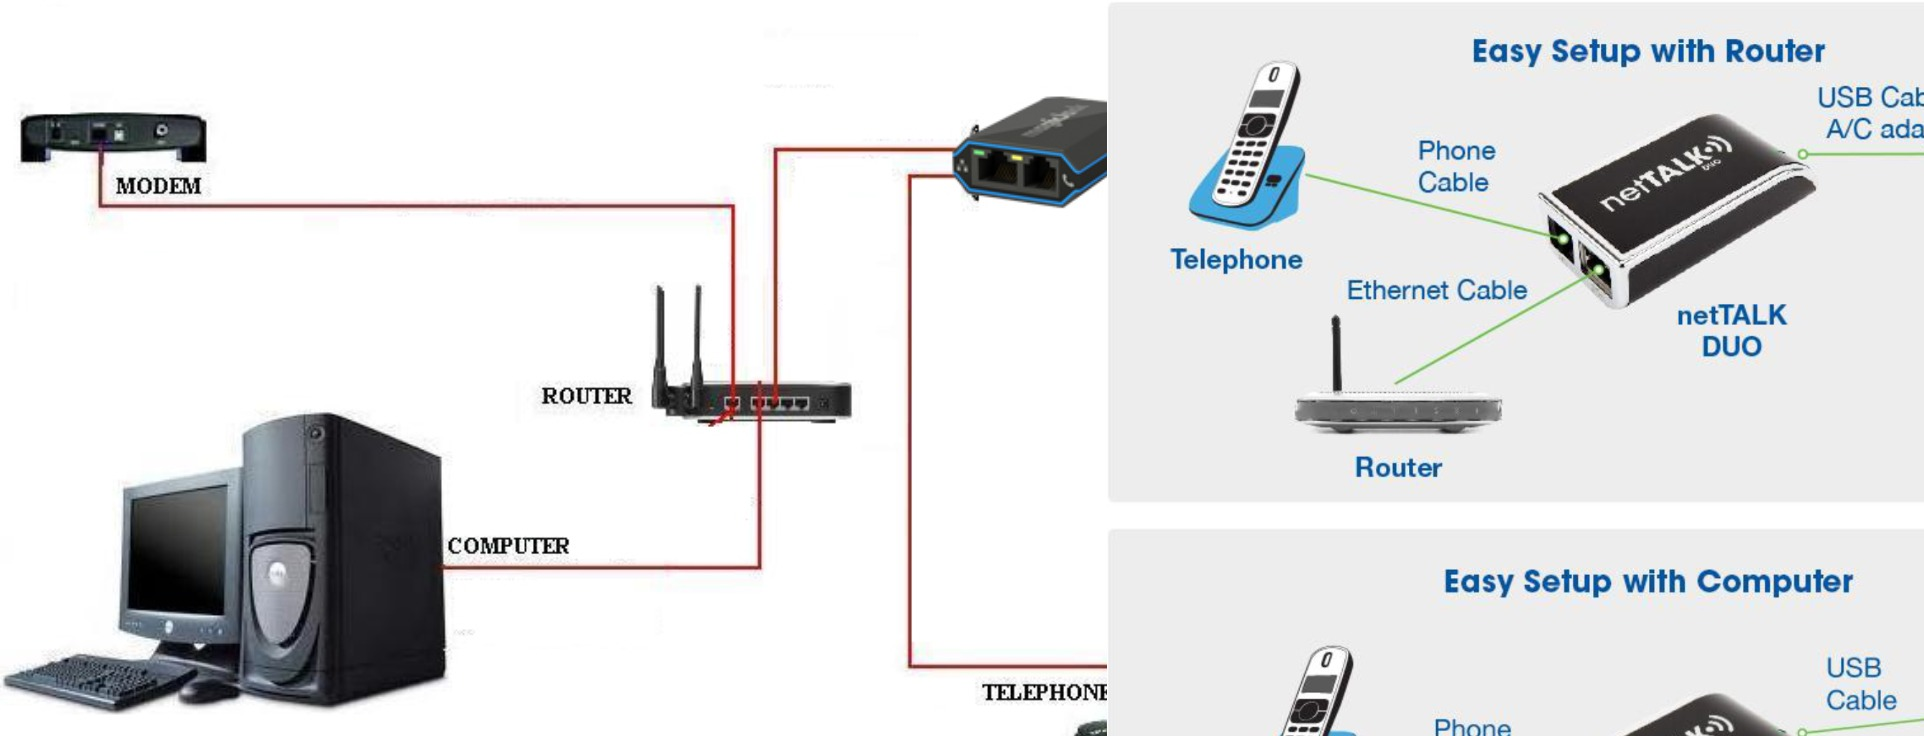 magicjack go vs nettalk duo wifi which is better thevoiphub rh thevoiphub com Soleno Diagram for Wiring Soleno Diagram for Wiring